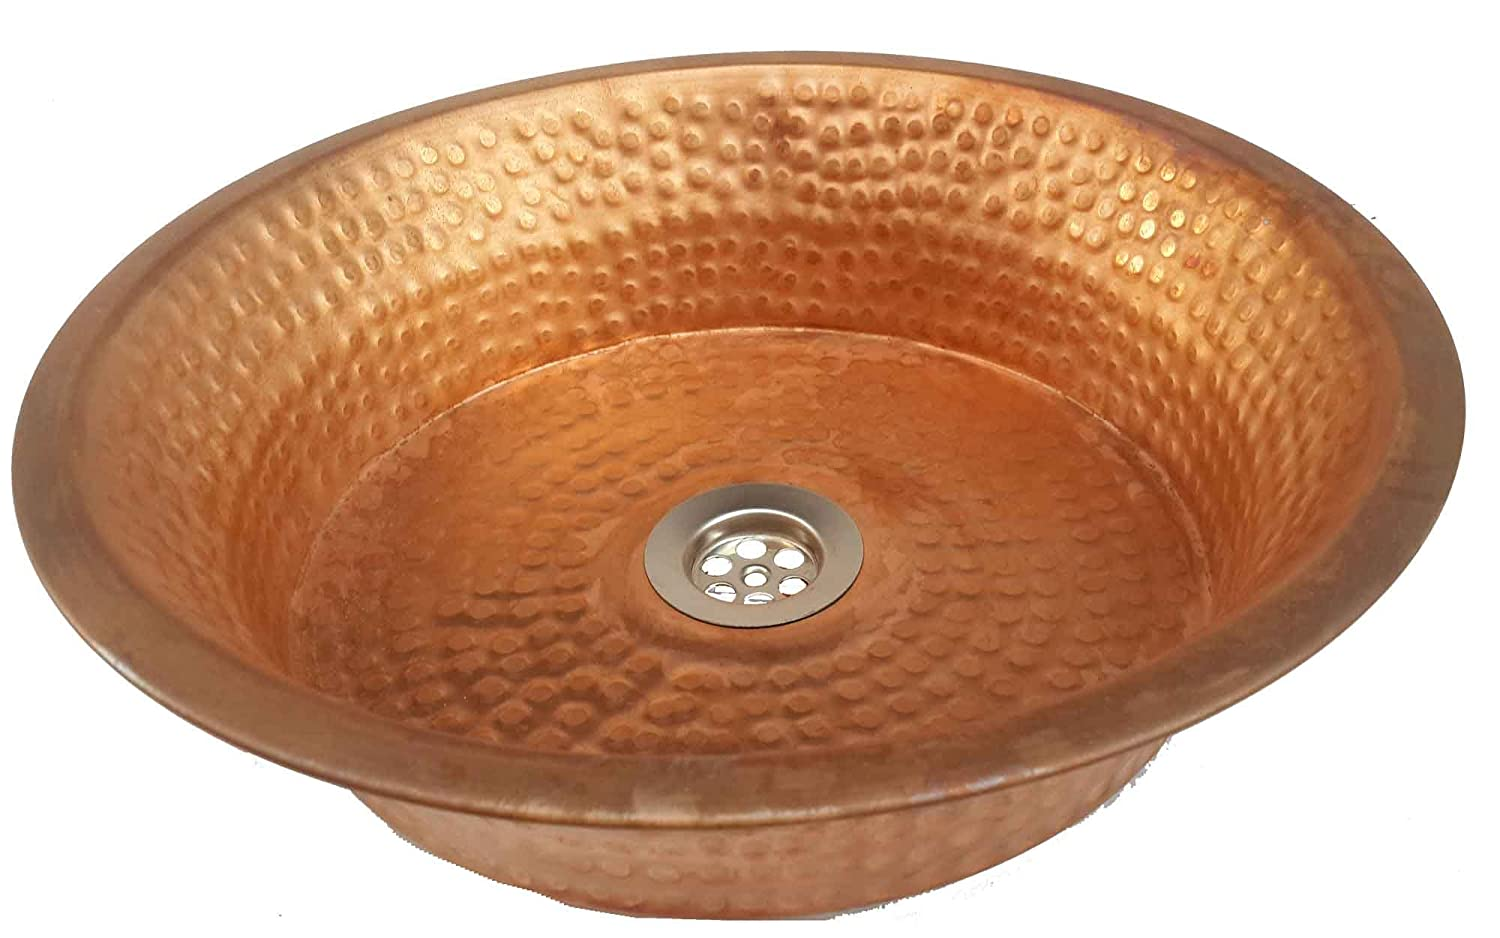 Bathroom Lavatory Sink Egypt Gift Shops 14 Polished Pan Panning Copper Toilet Bathroom